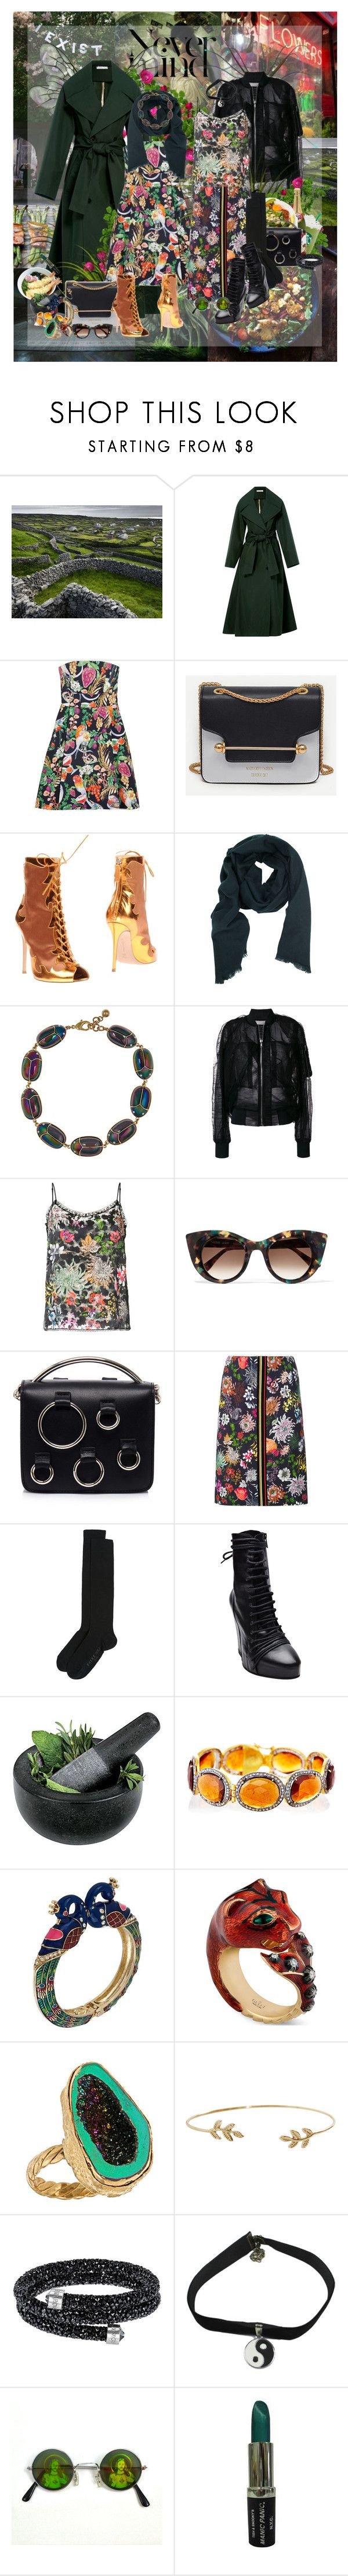 """""""Printed"""" by lady-redrise ❤ liked on Polyvore featuring National Geographic Home, Oscar de la Renta, Matthew Williamson, Gianvito Rossi, TIBI, Lulu Frost, Rick Owens, MARC CAIN, Thierry Lasry and MSGM"""